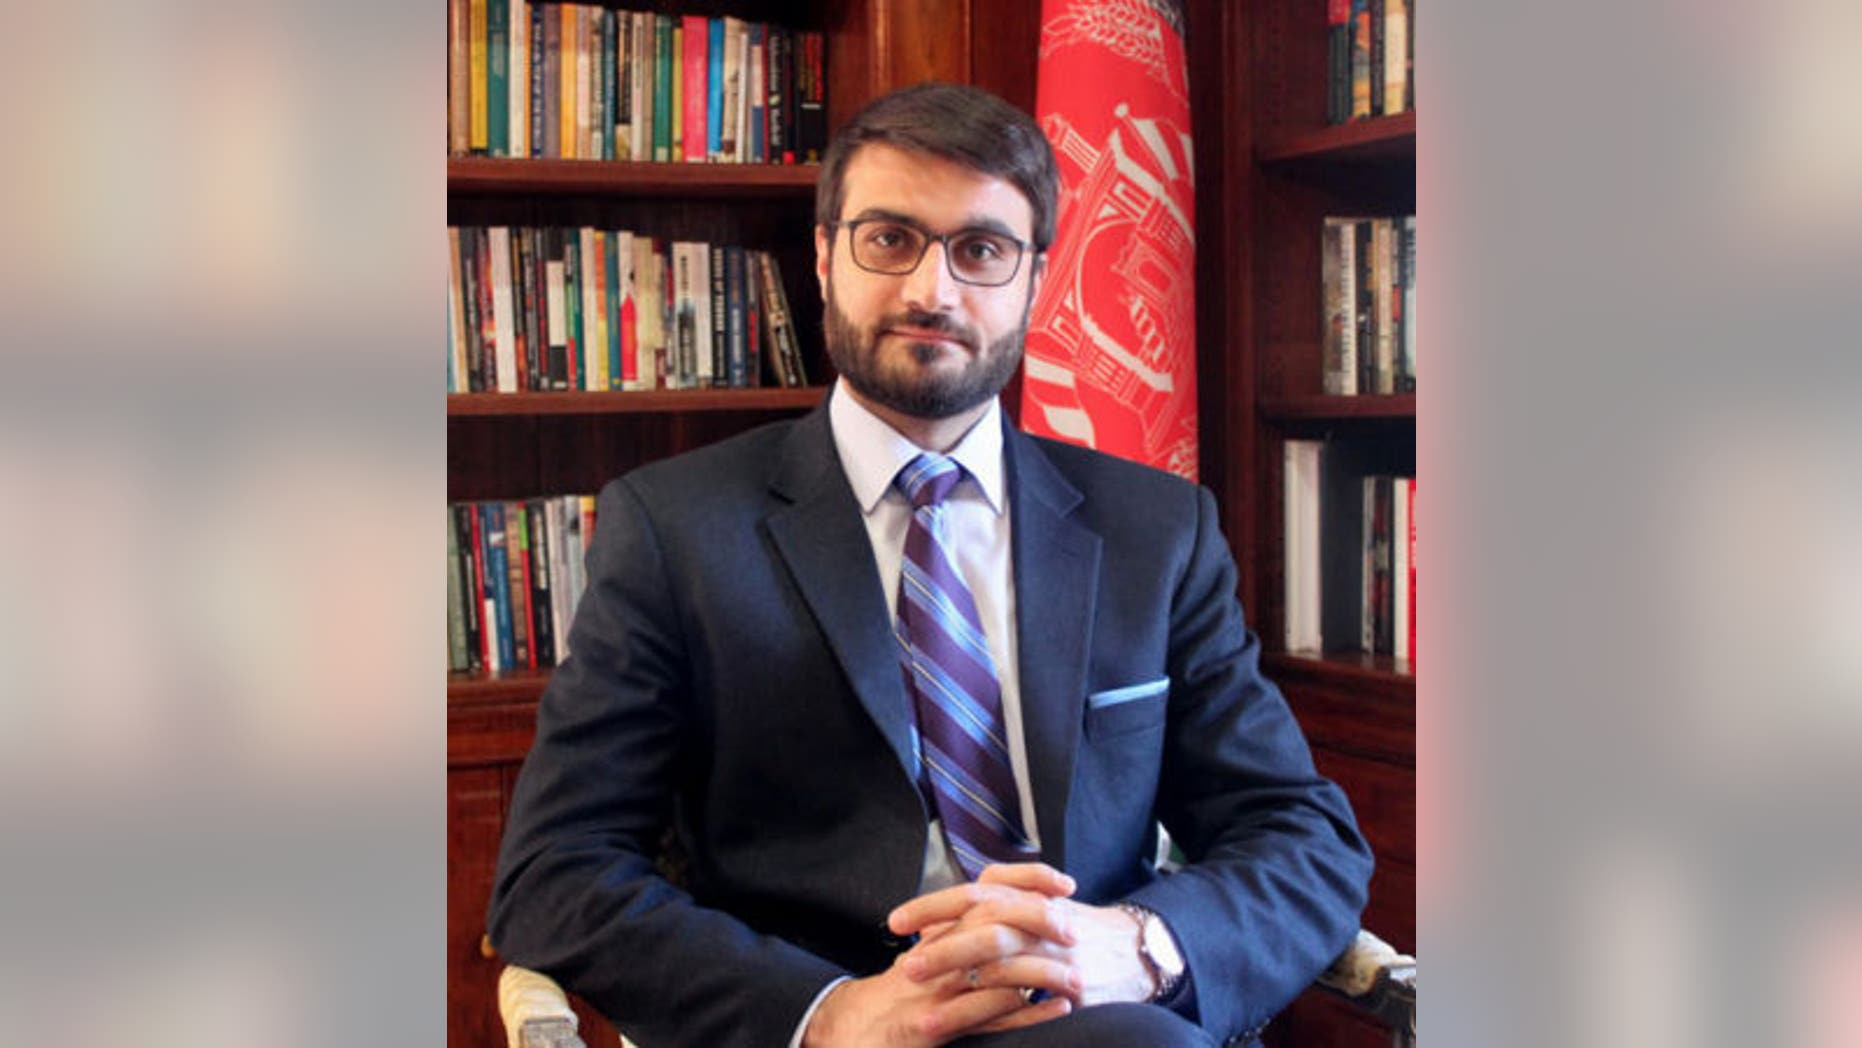 Afghanistan's Ambassador to the United States, Hamdullah Mohib